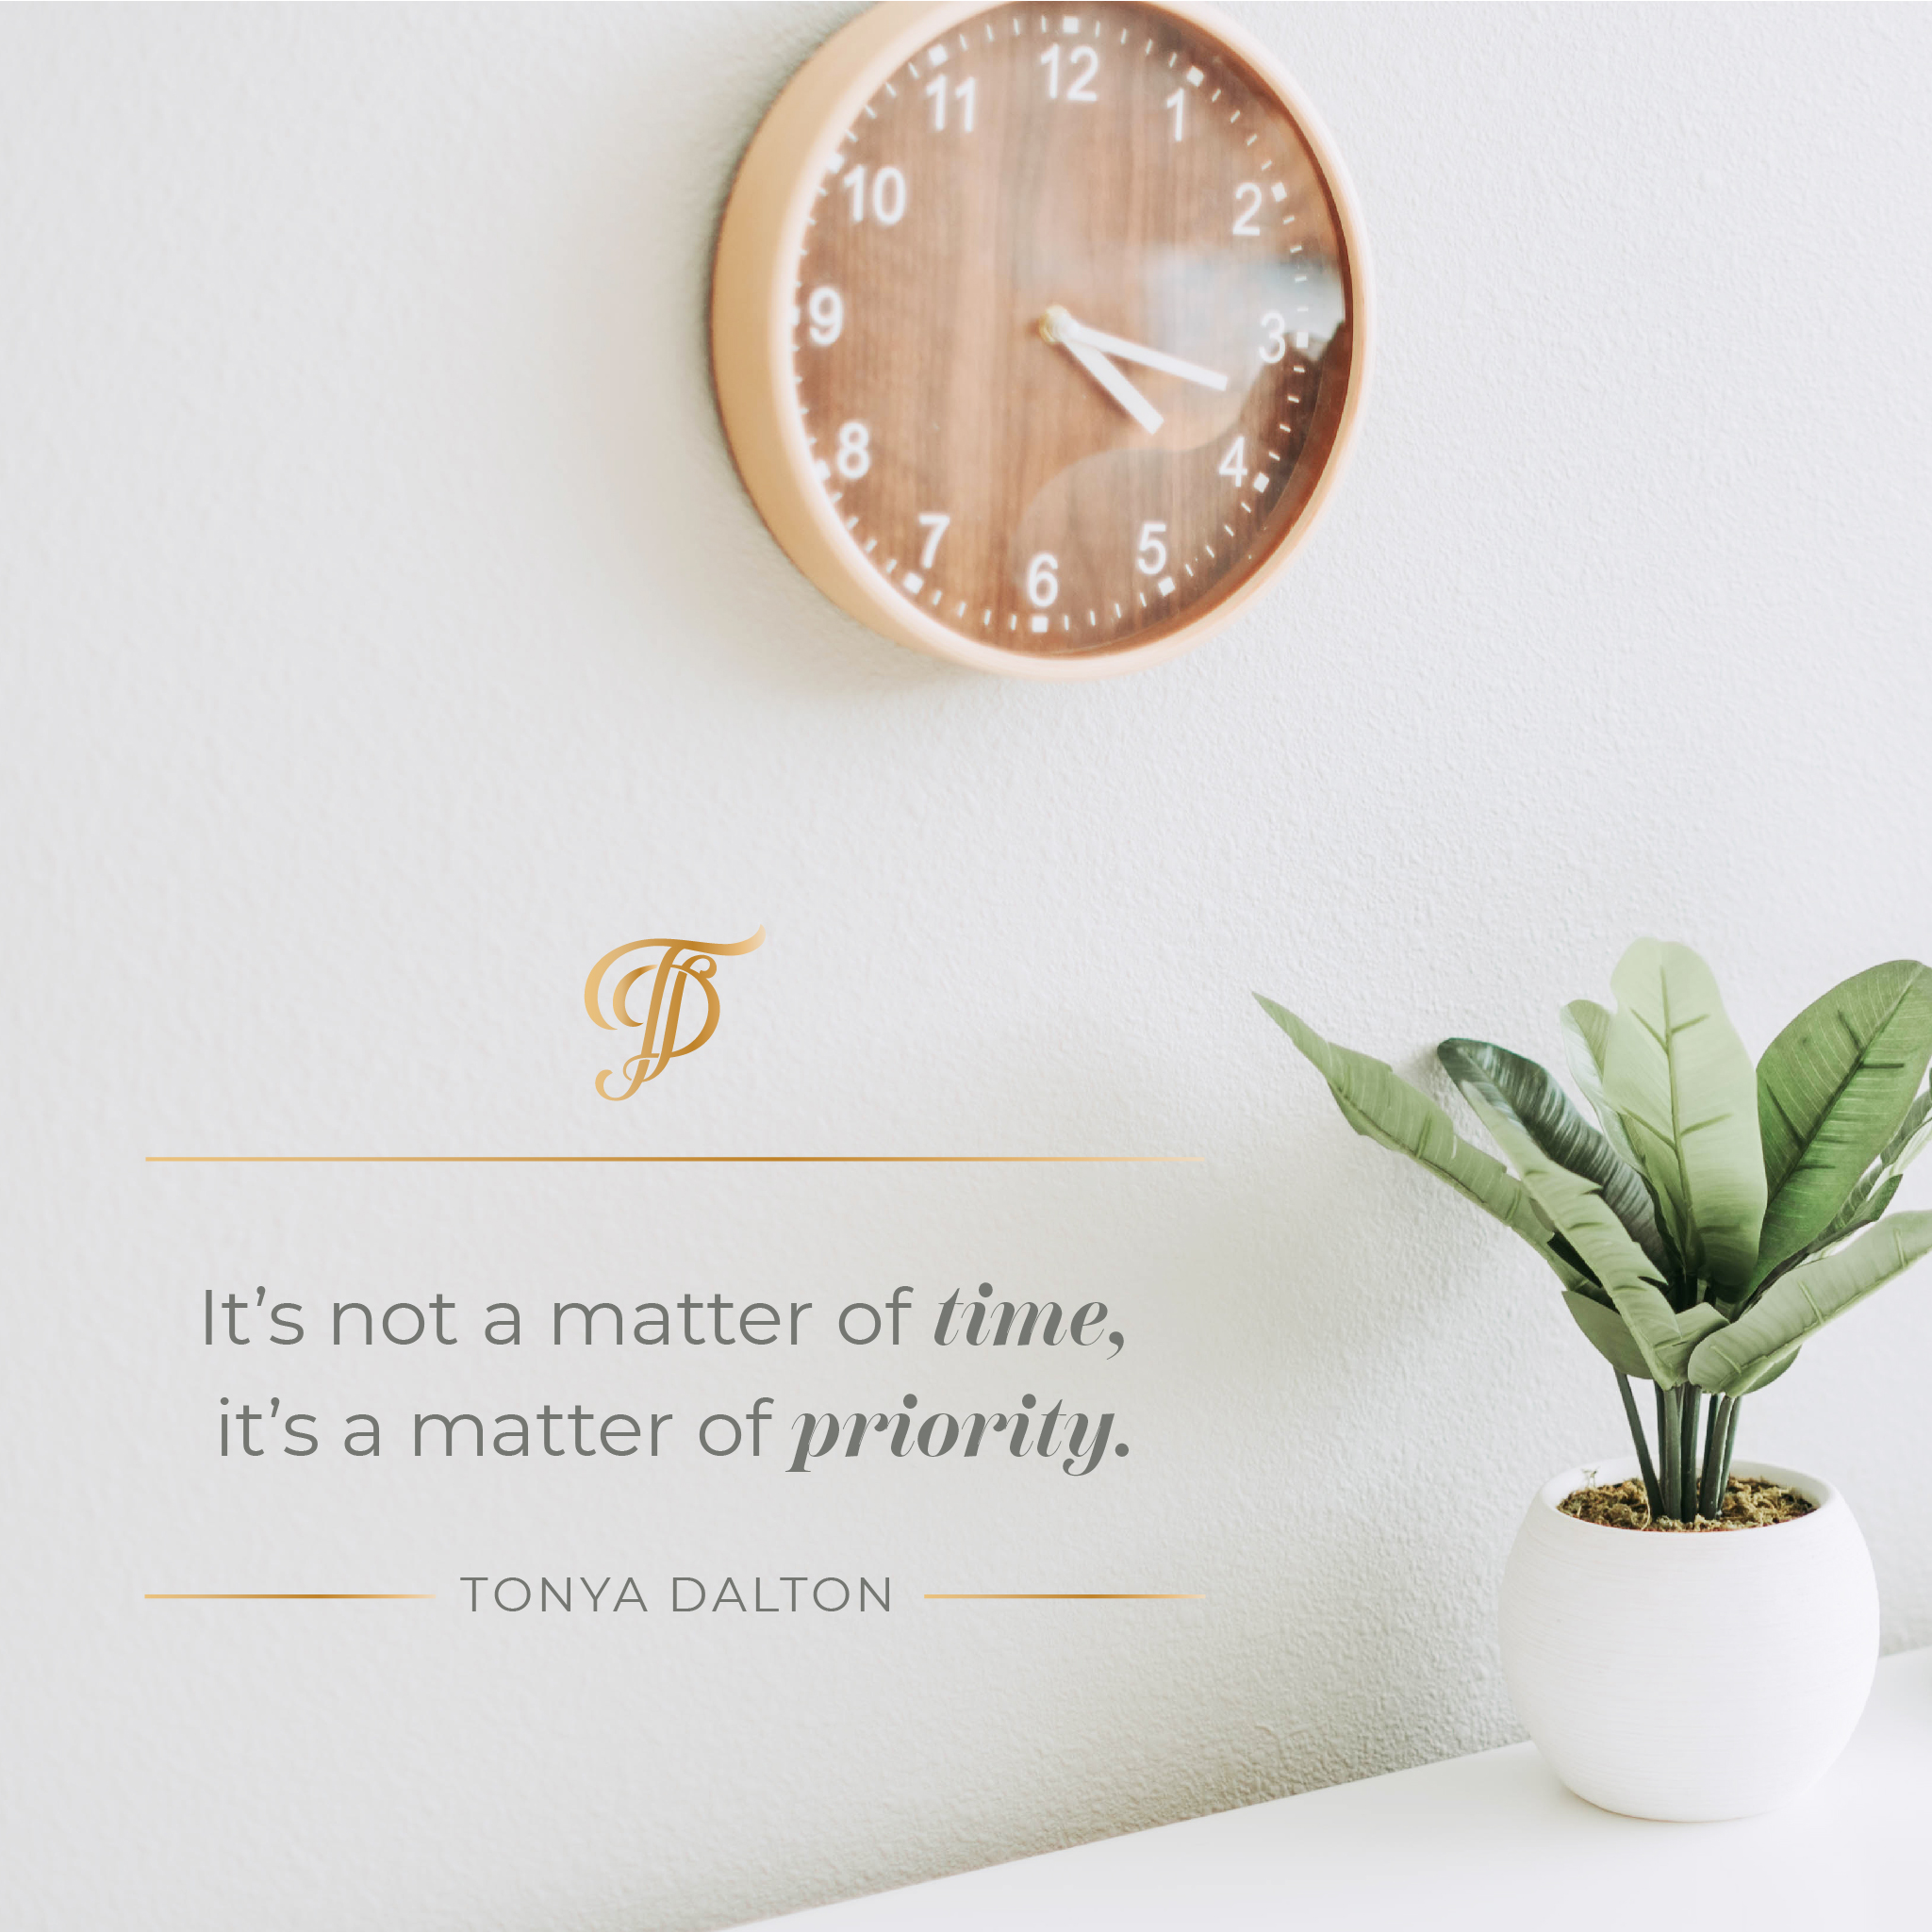 106-productivity-paradox-its-not-a-matter-of-time-its-a-matter-of-priority-tonya-dalton.jpg